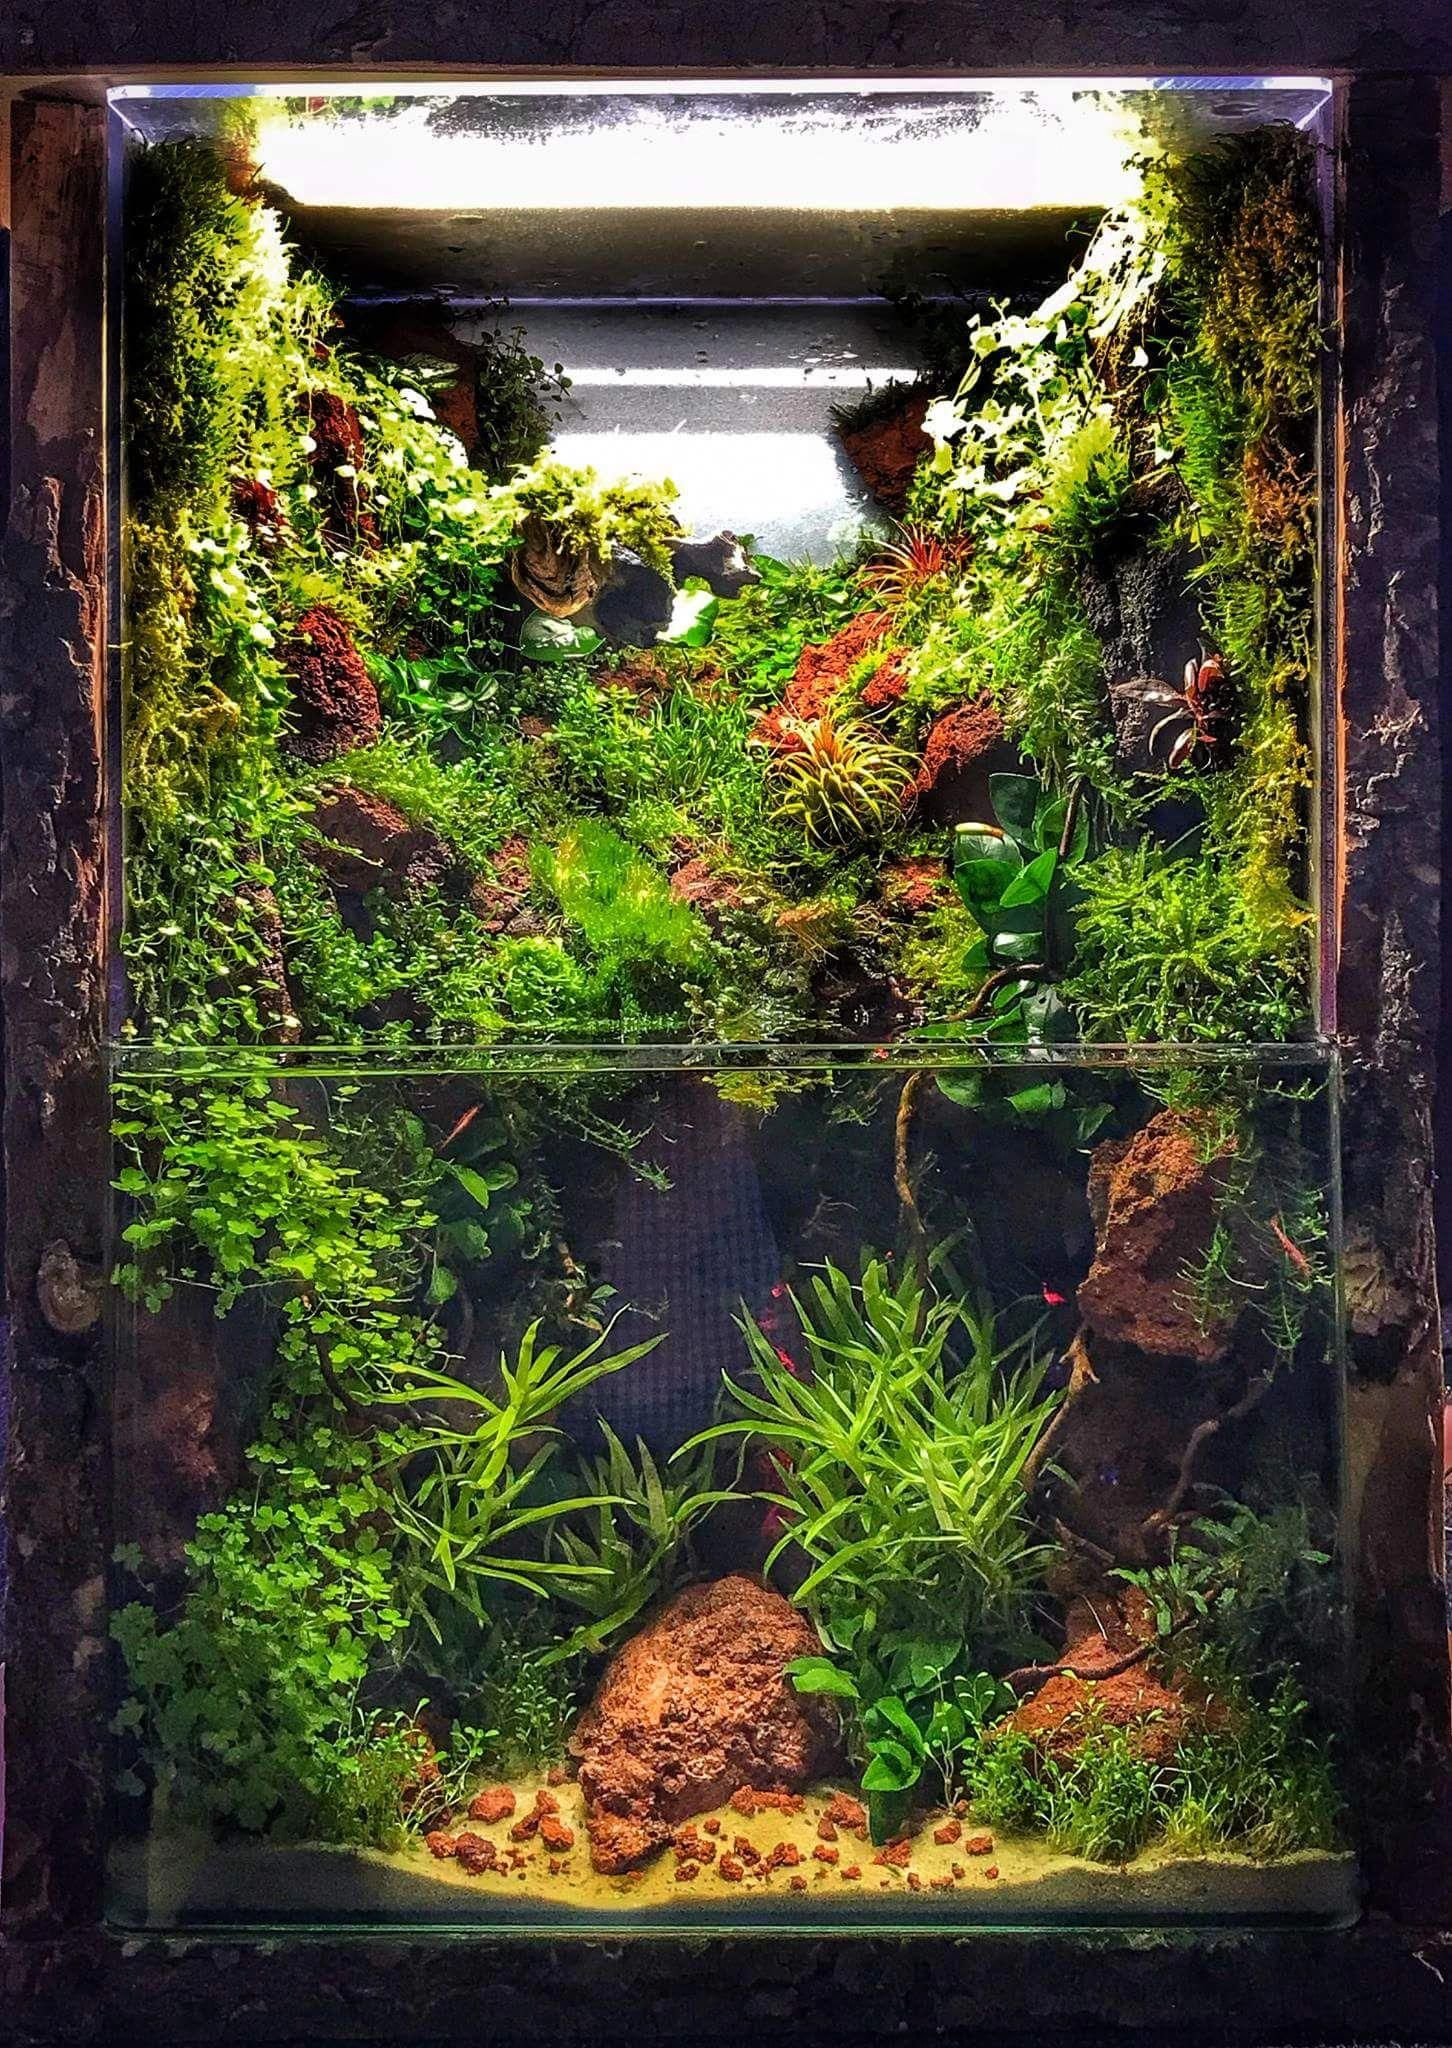 You don't need a lot of space to create a jungle inside ...